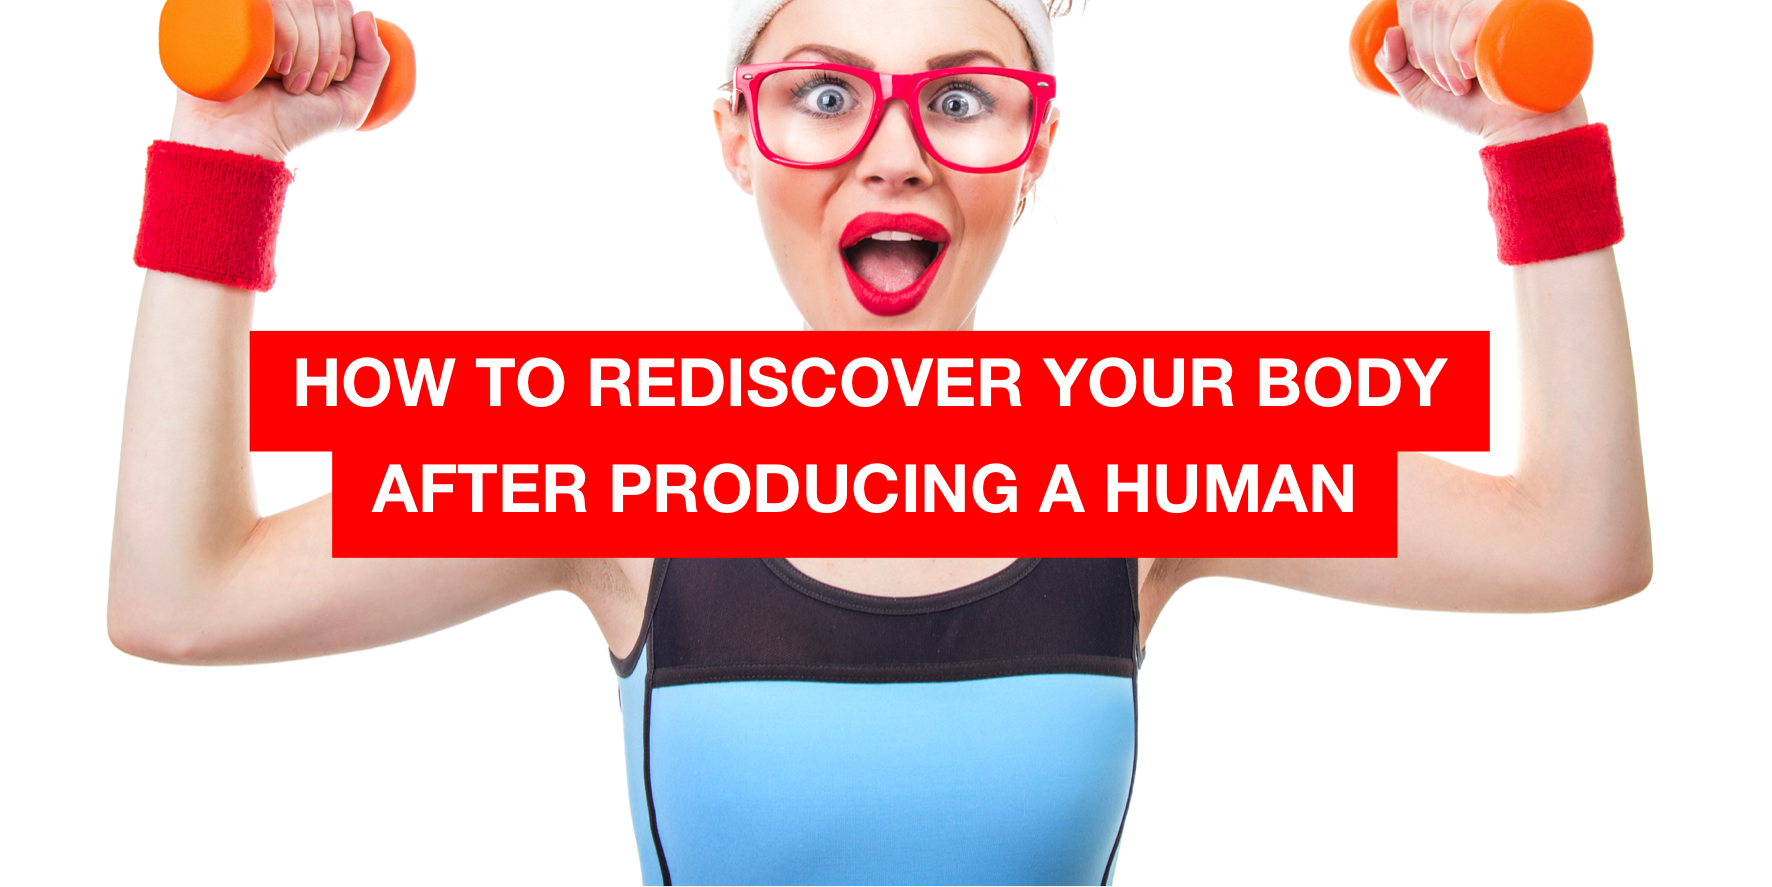 How to rediscover your body after producing a human